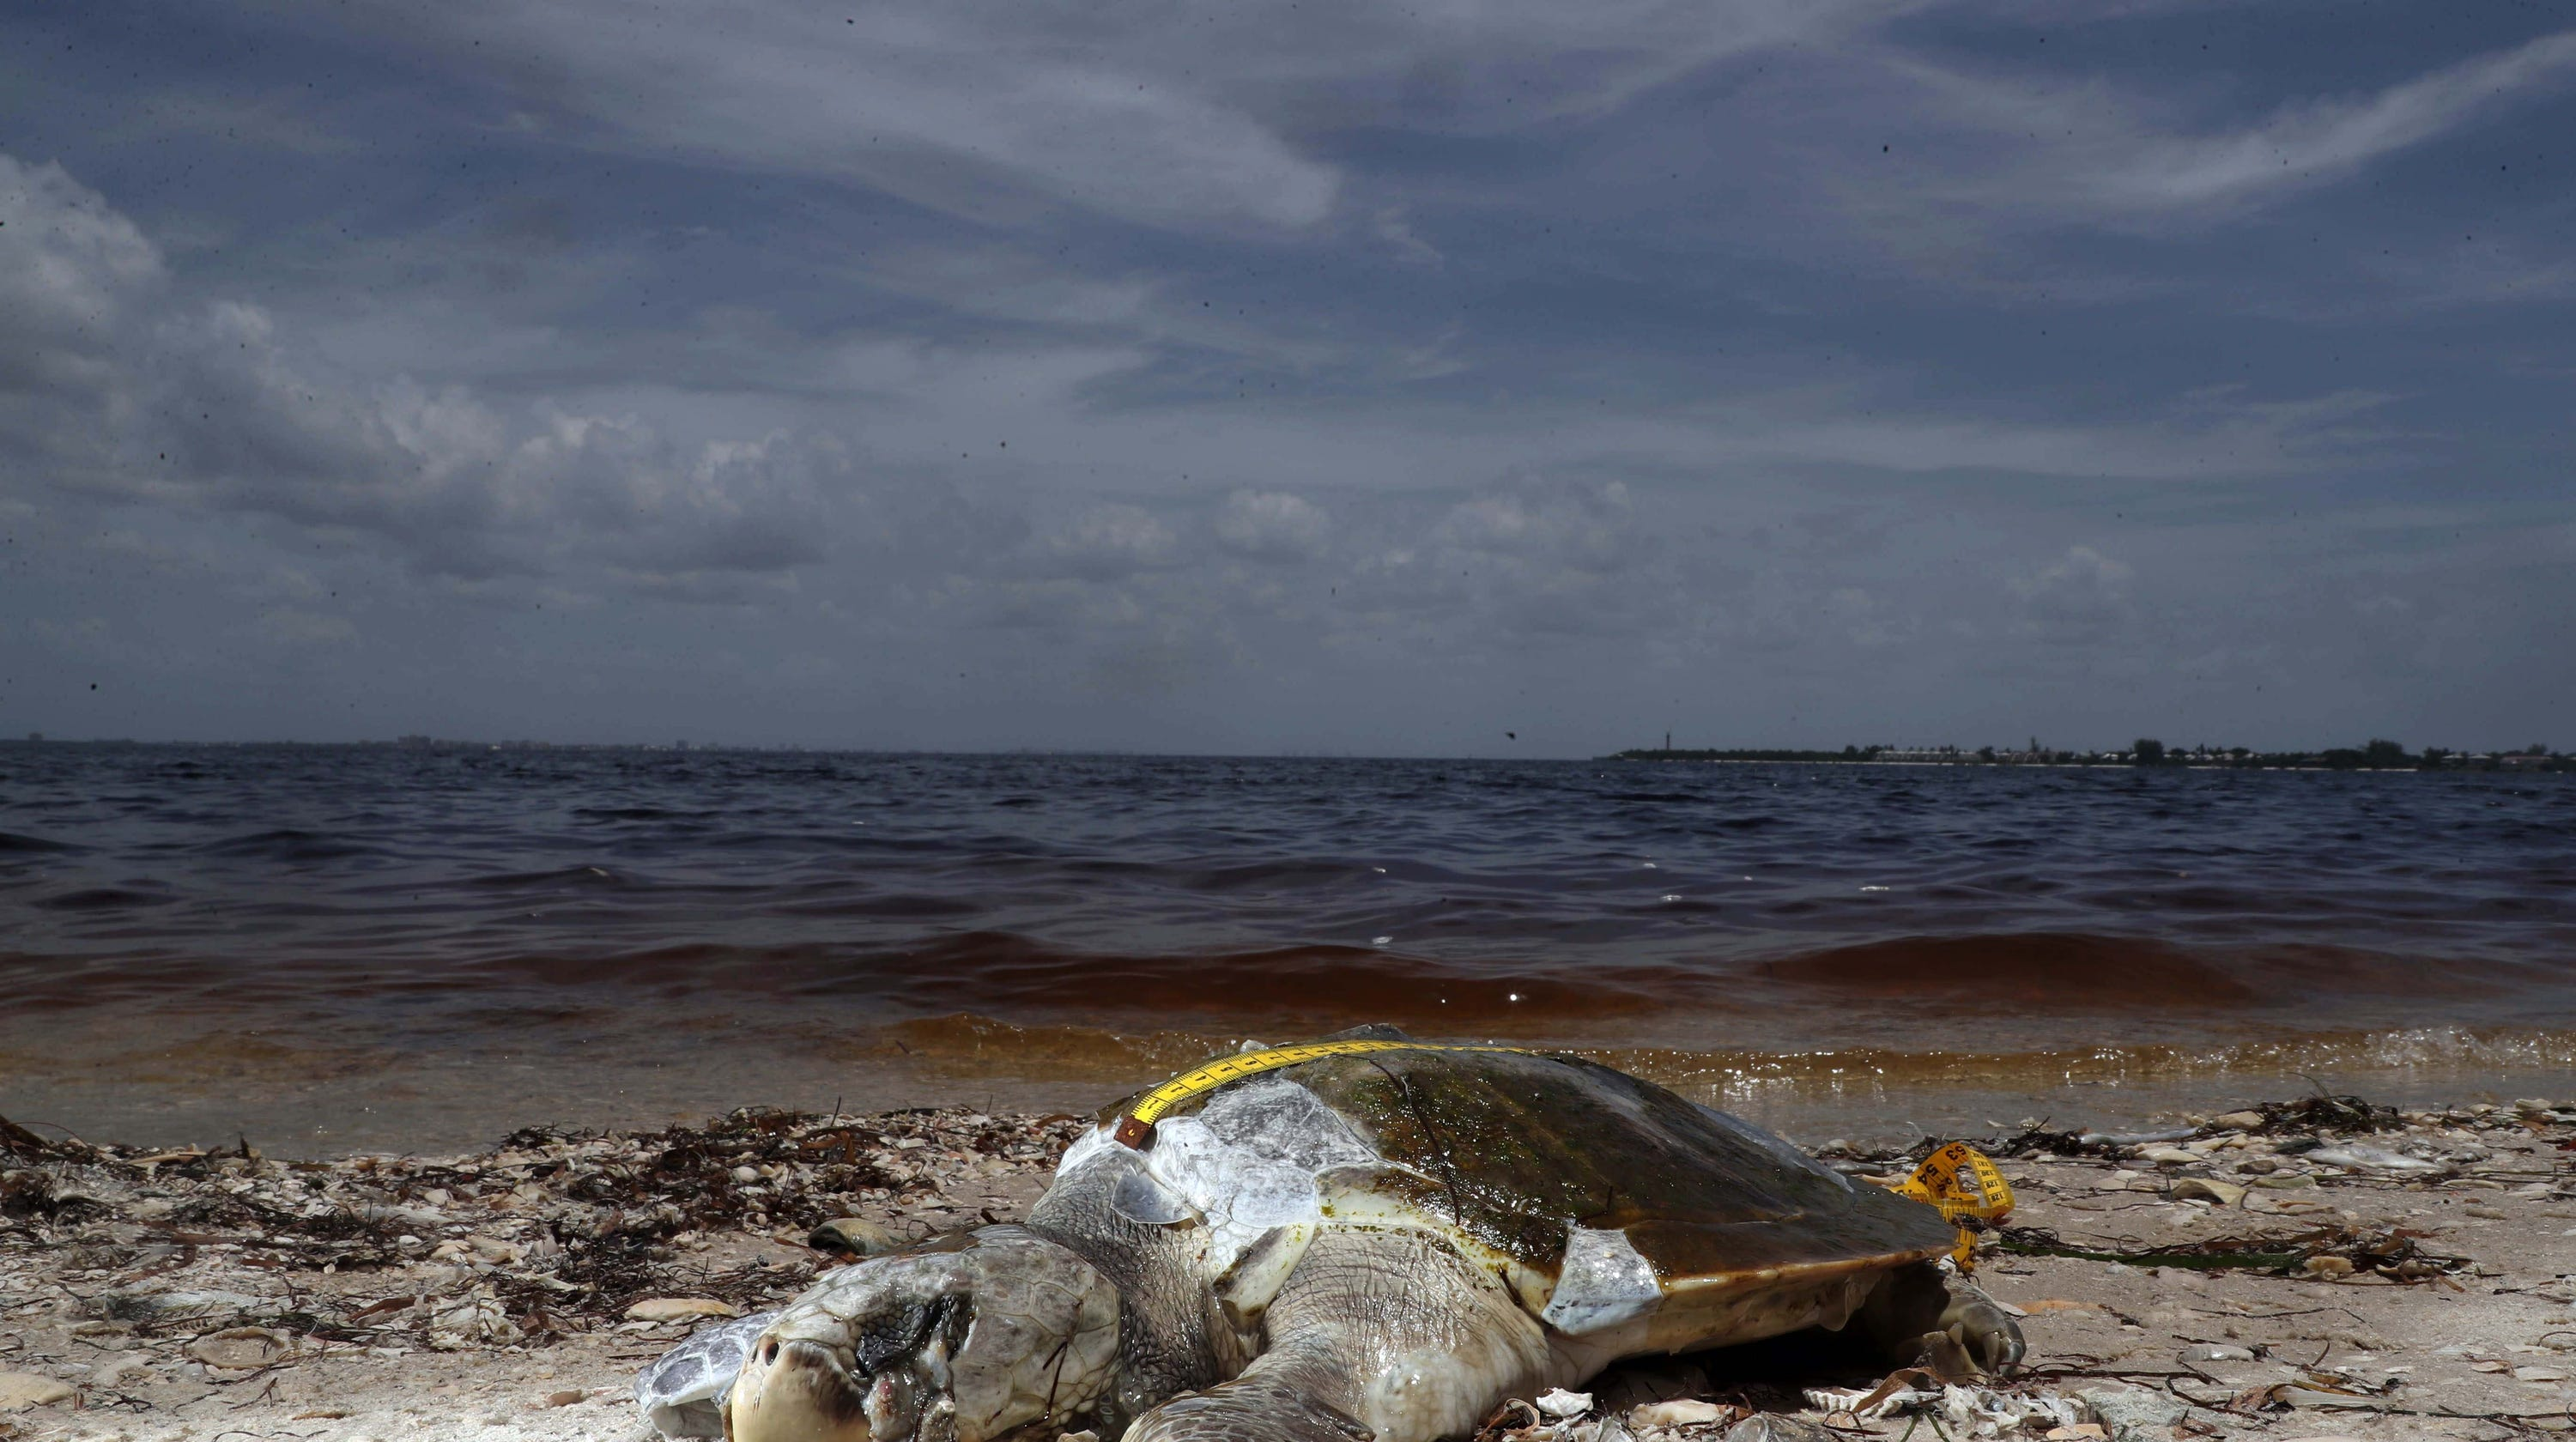 Should travelers visit Florida beaches during a red tide outbreak?